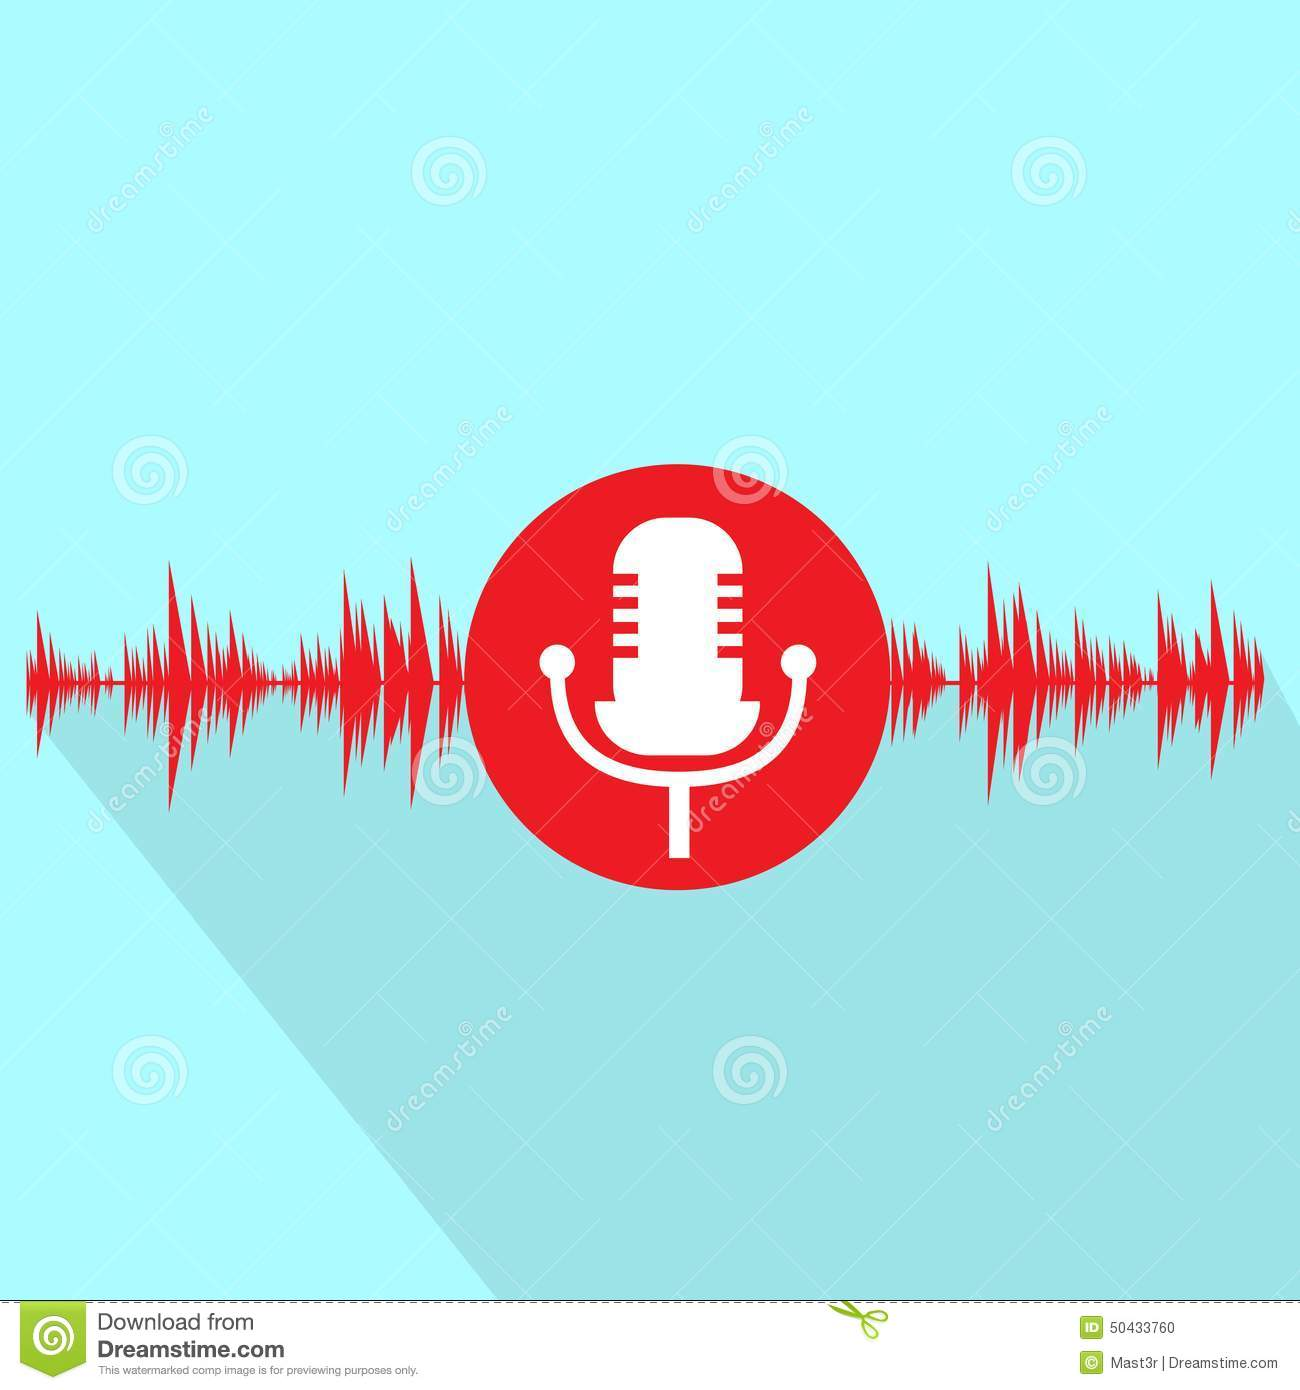 Microphone red icon with sound wave flat design